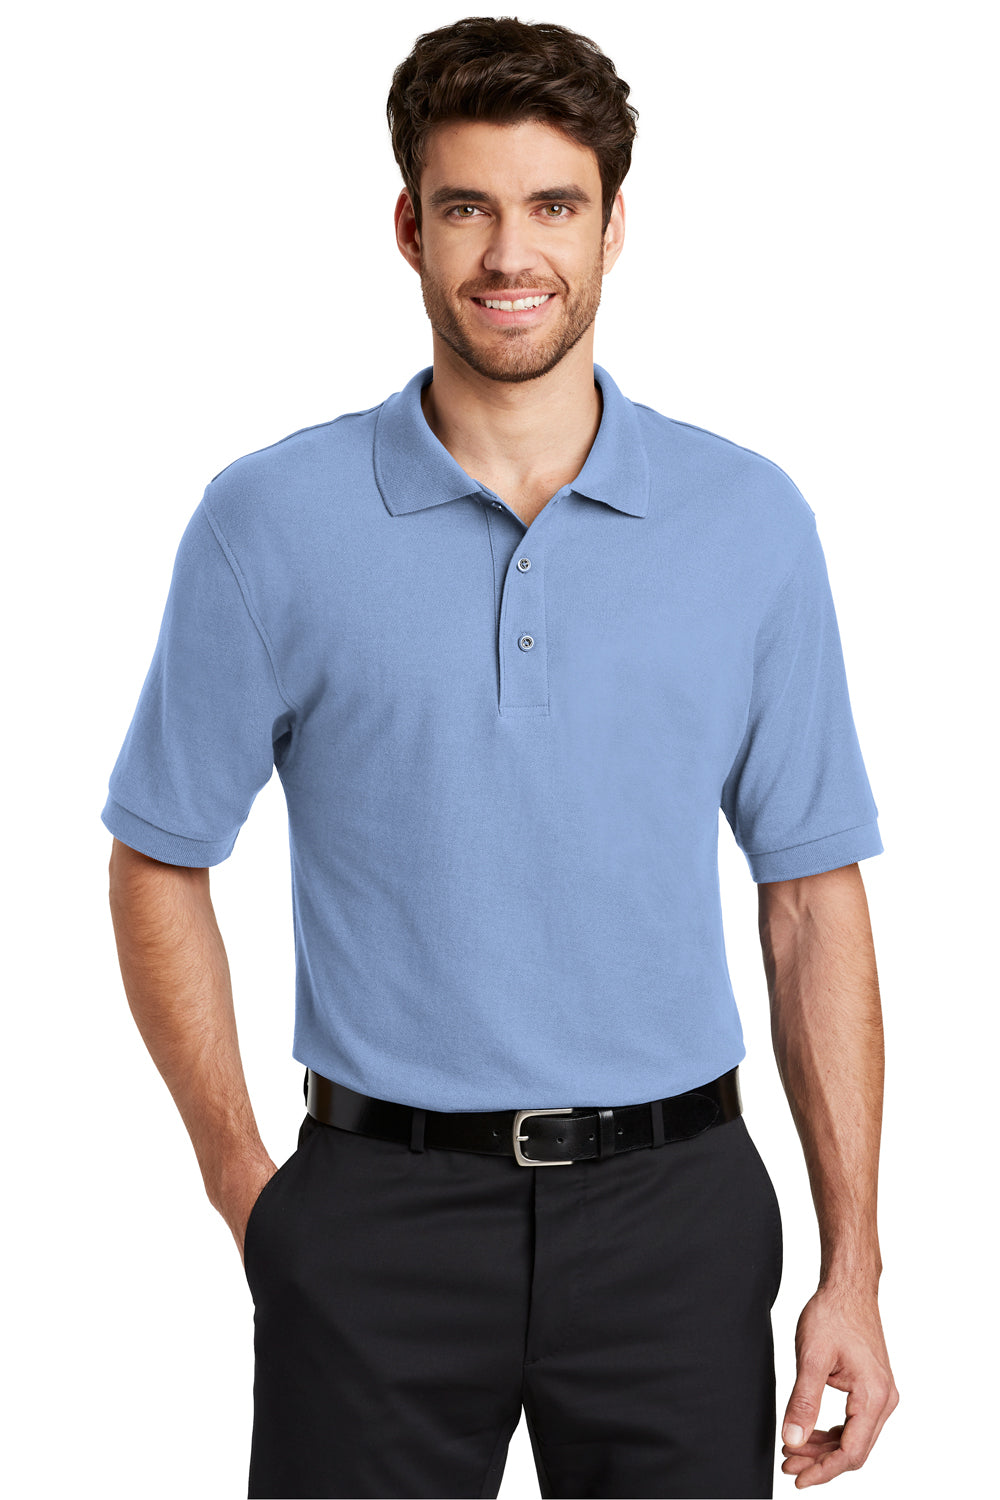 Port Authority K500 Mens Silk Touch Wrinkle Resistant Short Sleeve Polo Shirt Light Blue Front